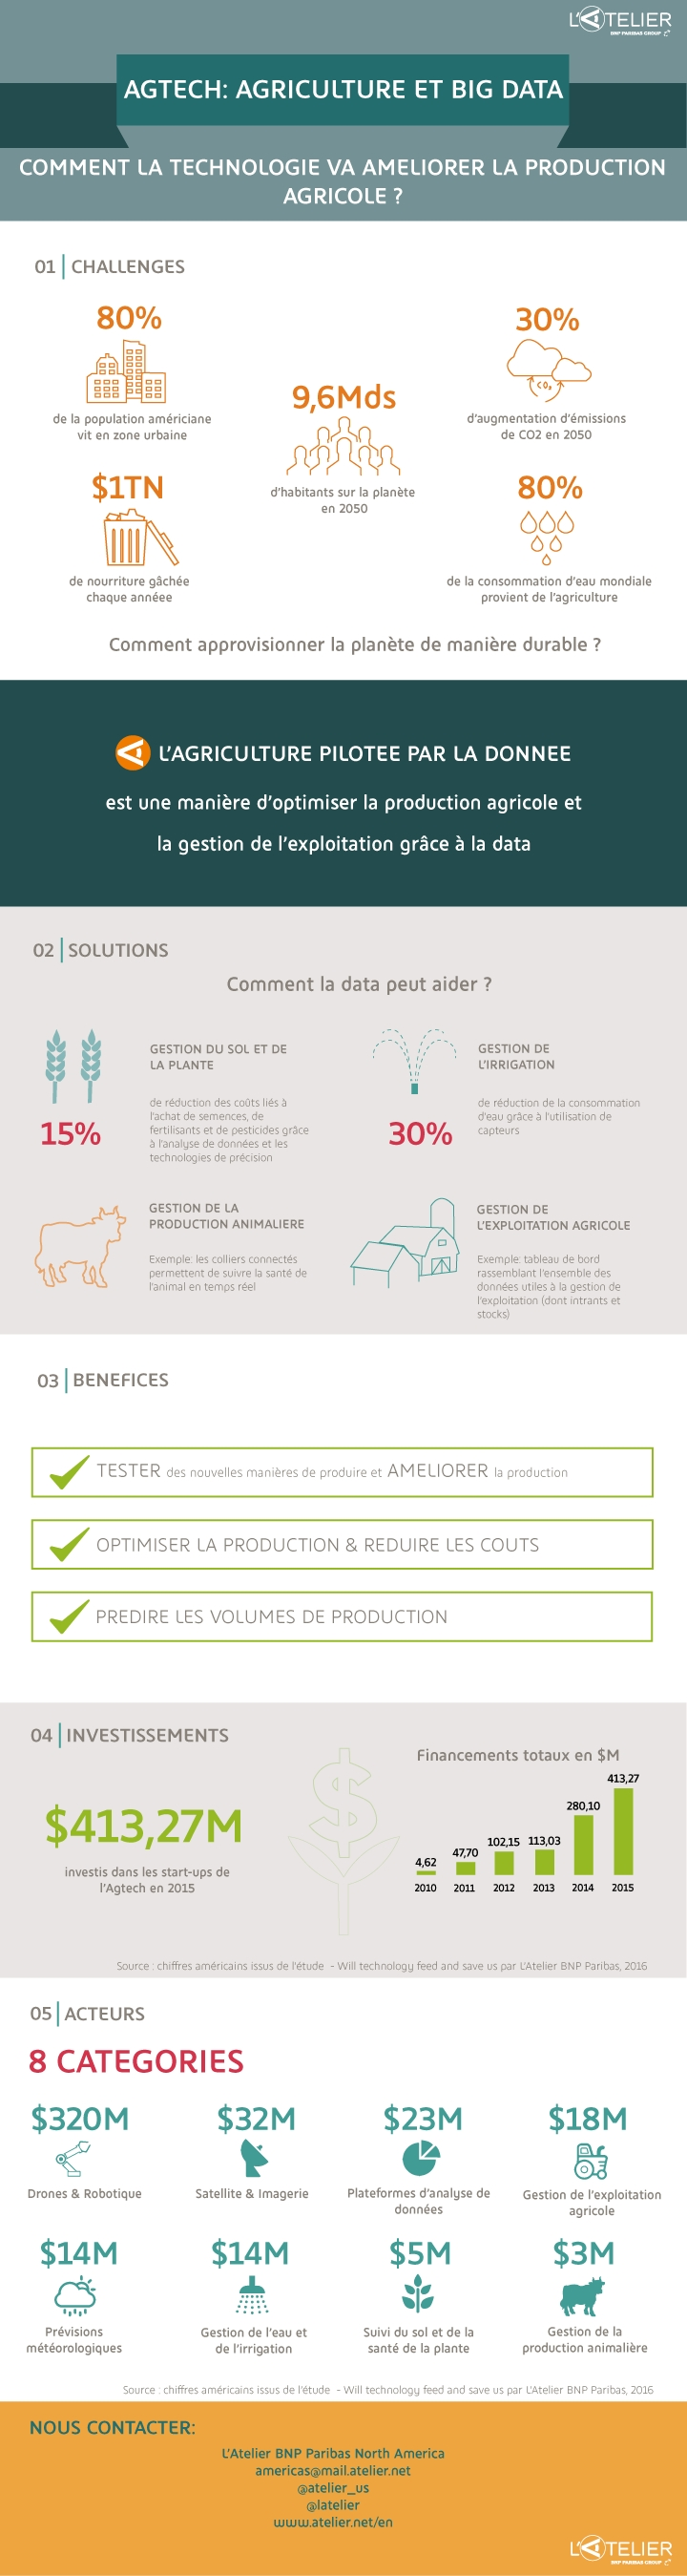 AgTech : agriculture & Big Data (infographie)